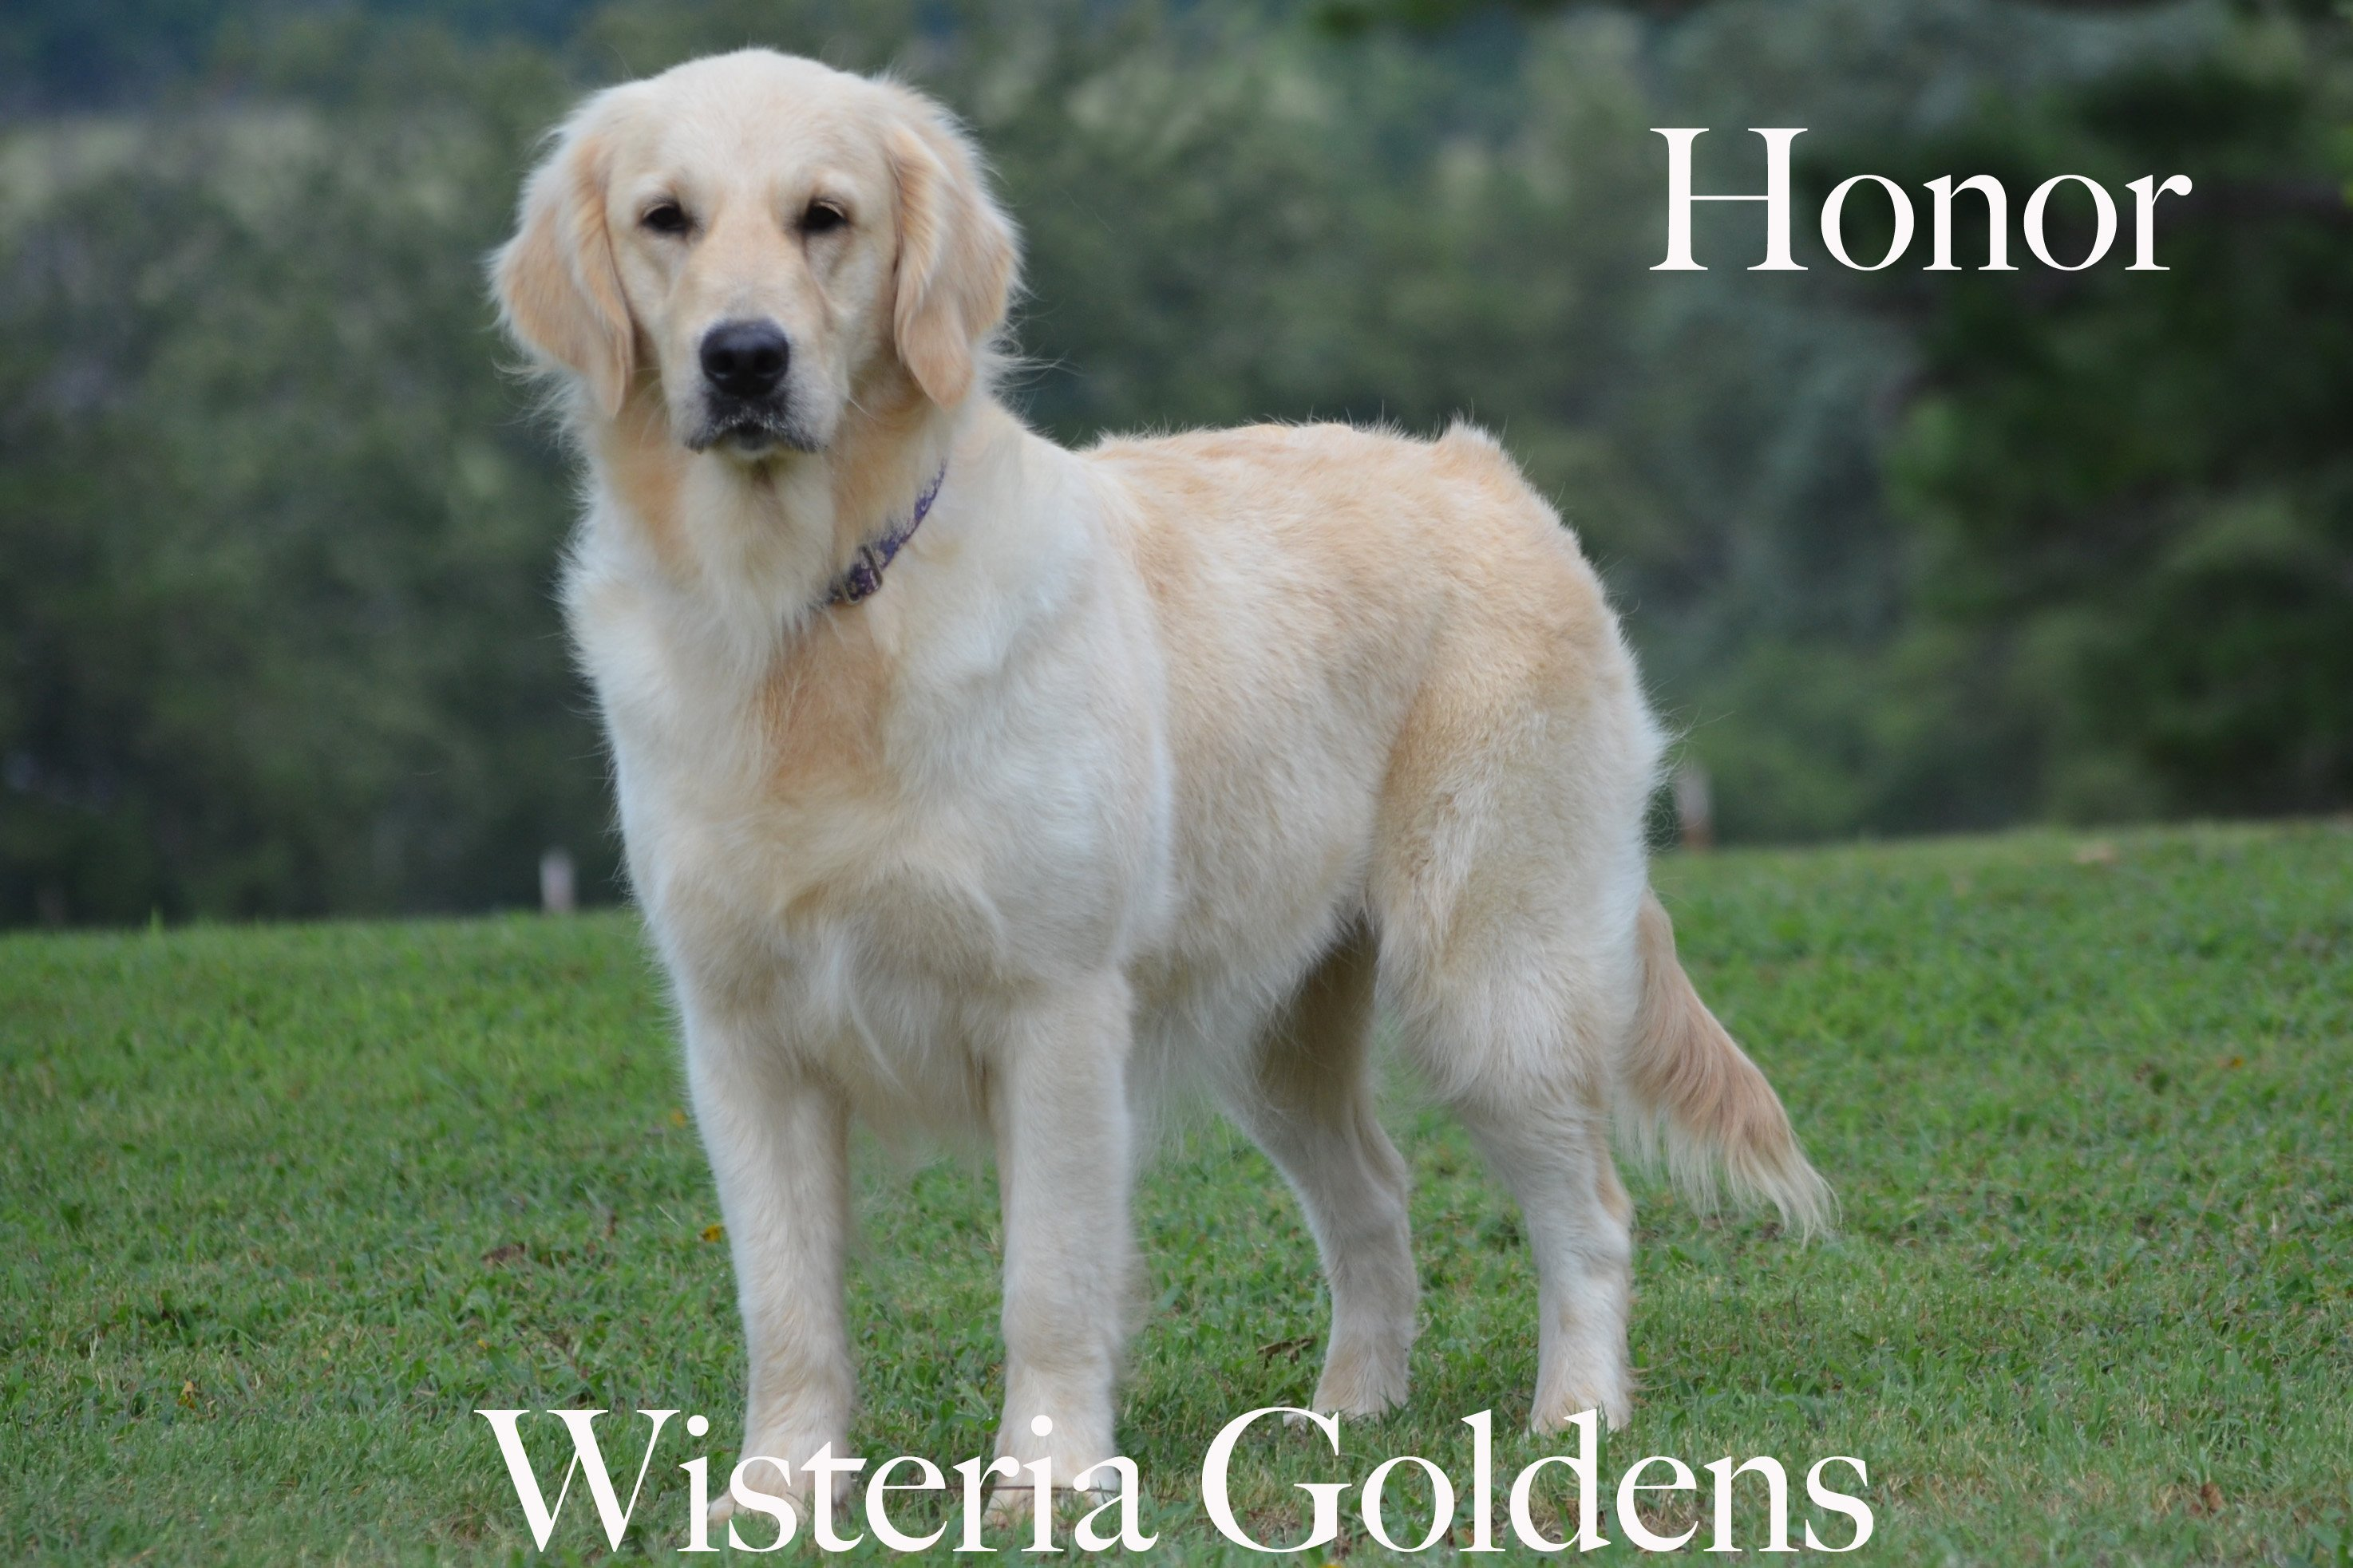 Honor_0145-full-english-creme-golden-retriever-wisteria-goldens